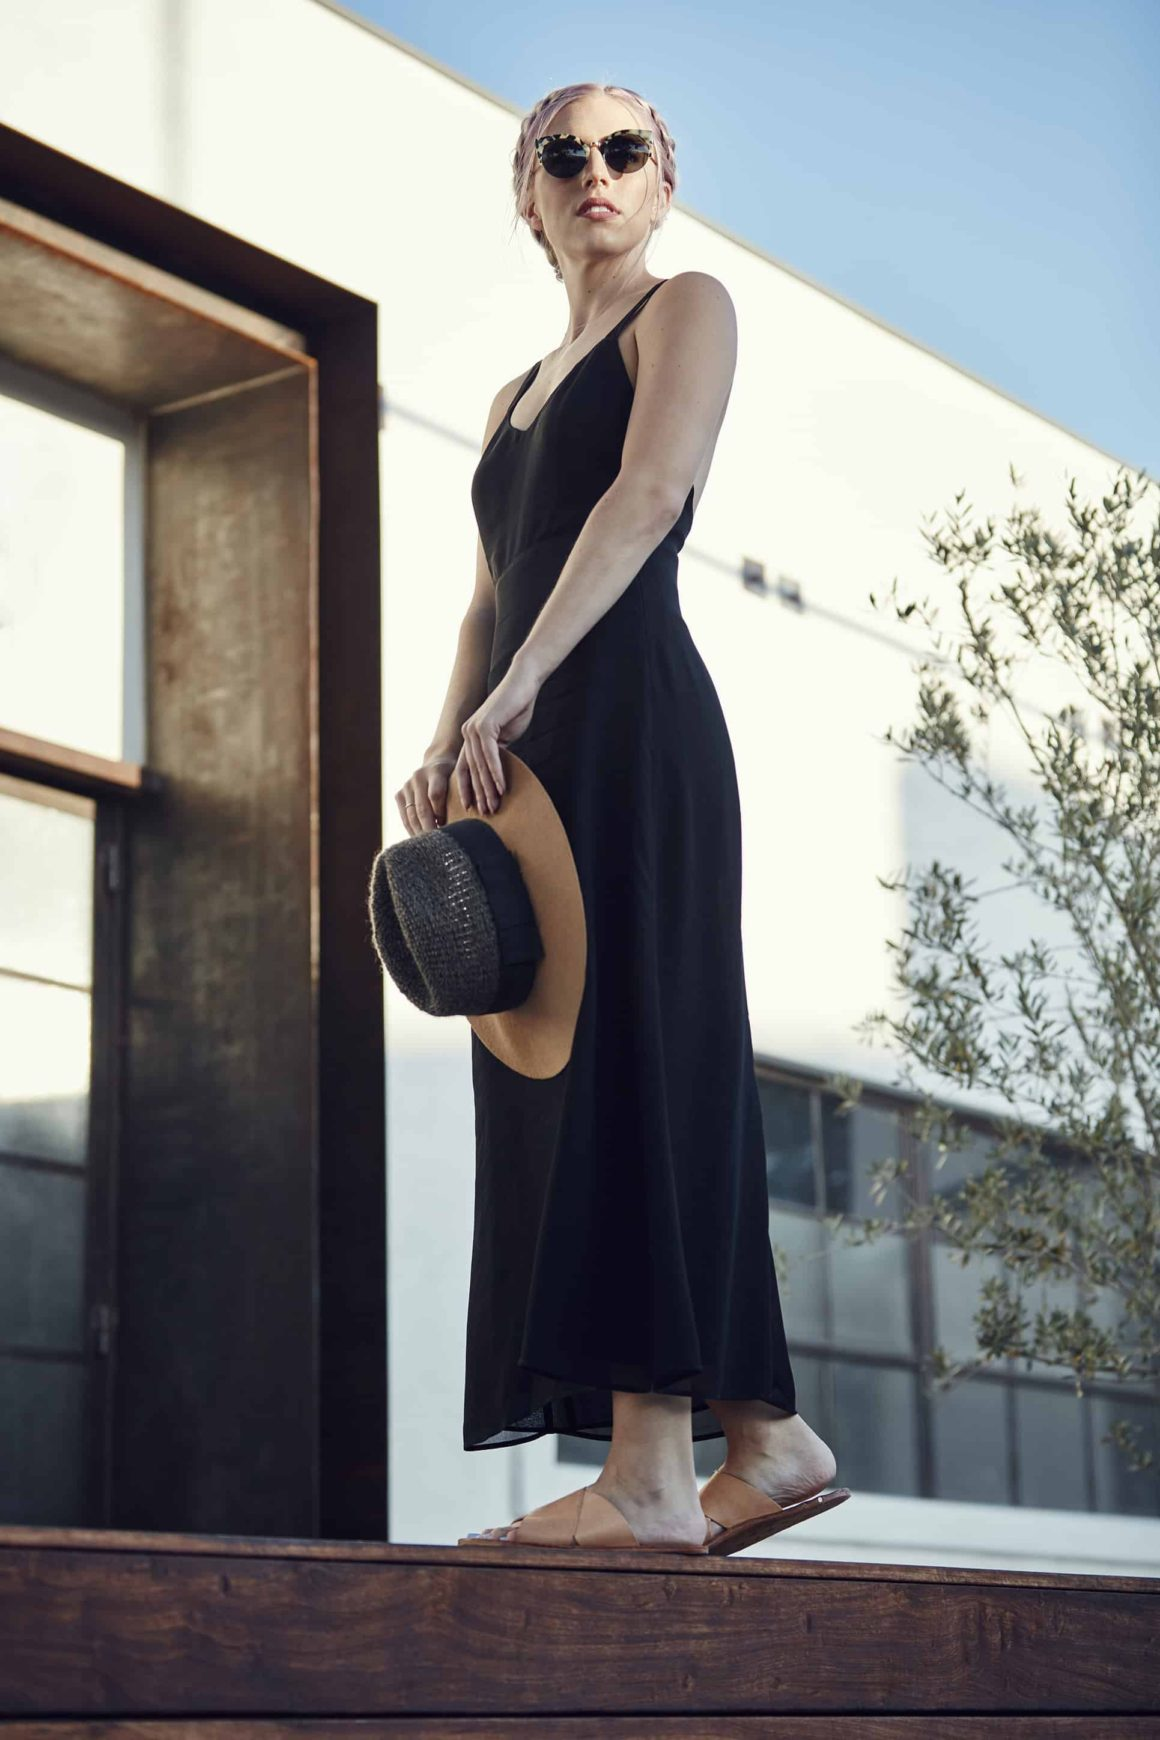 A Little Black Slip Dress + Sandals For the Fall Transition